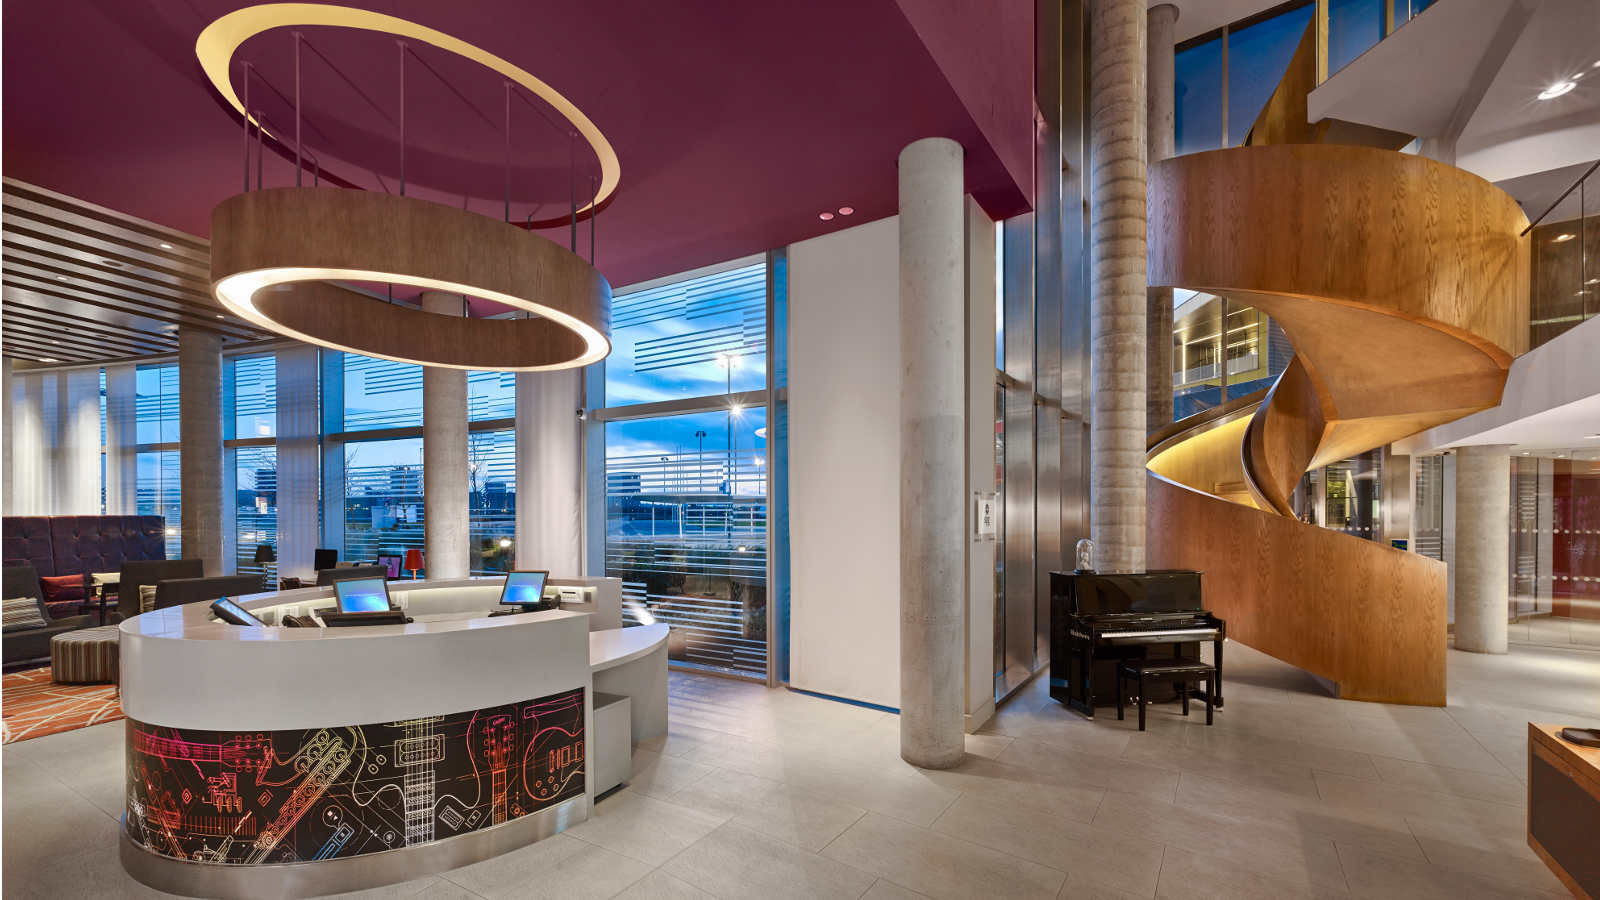 Business meets pleasure at the Aloft London Excel